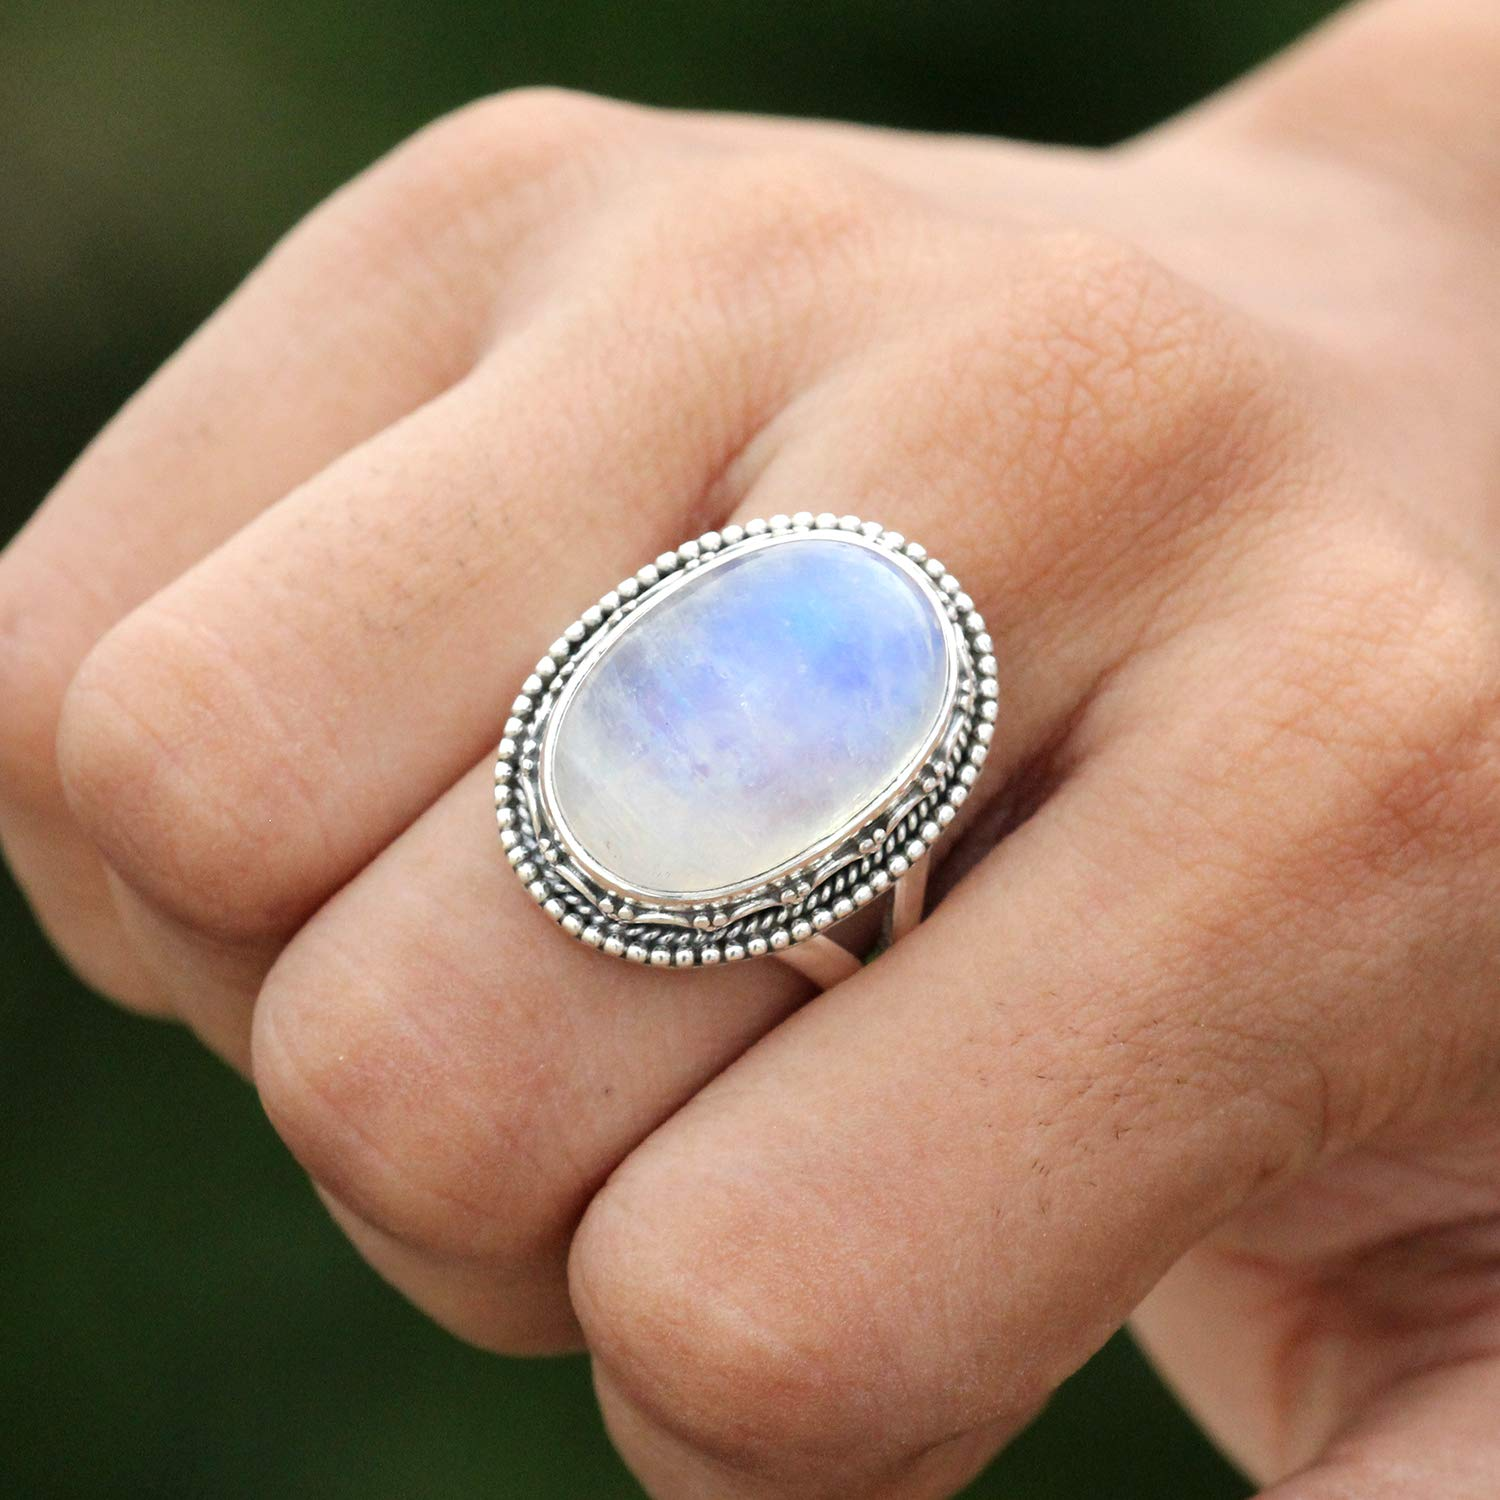 Moonstone Ring Blue Fire Stone Cocktail Jewelry Womens Fashion jewelry Victorian Ring Statement jewelry